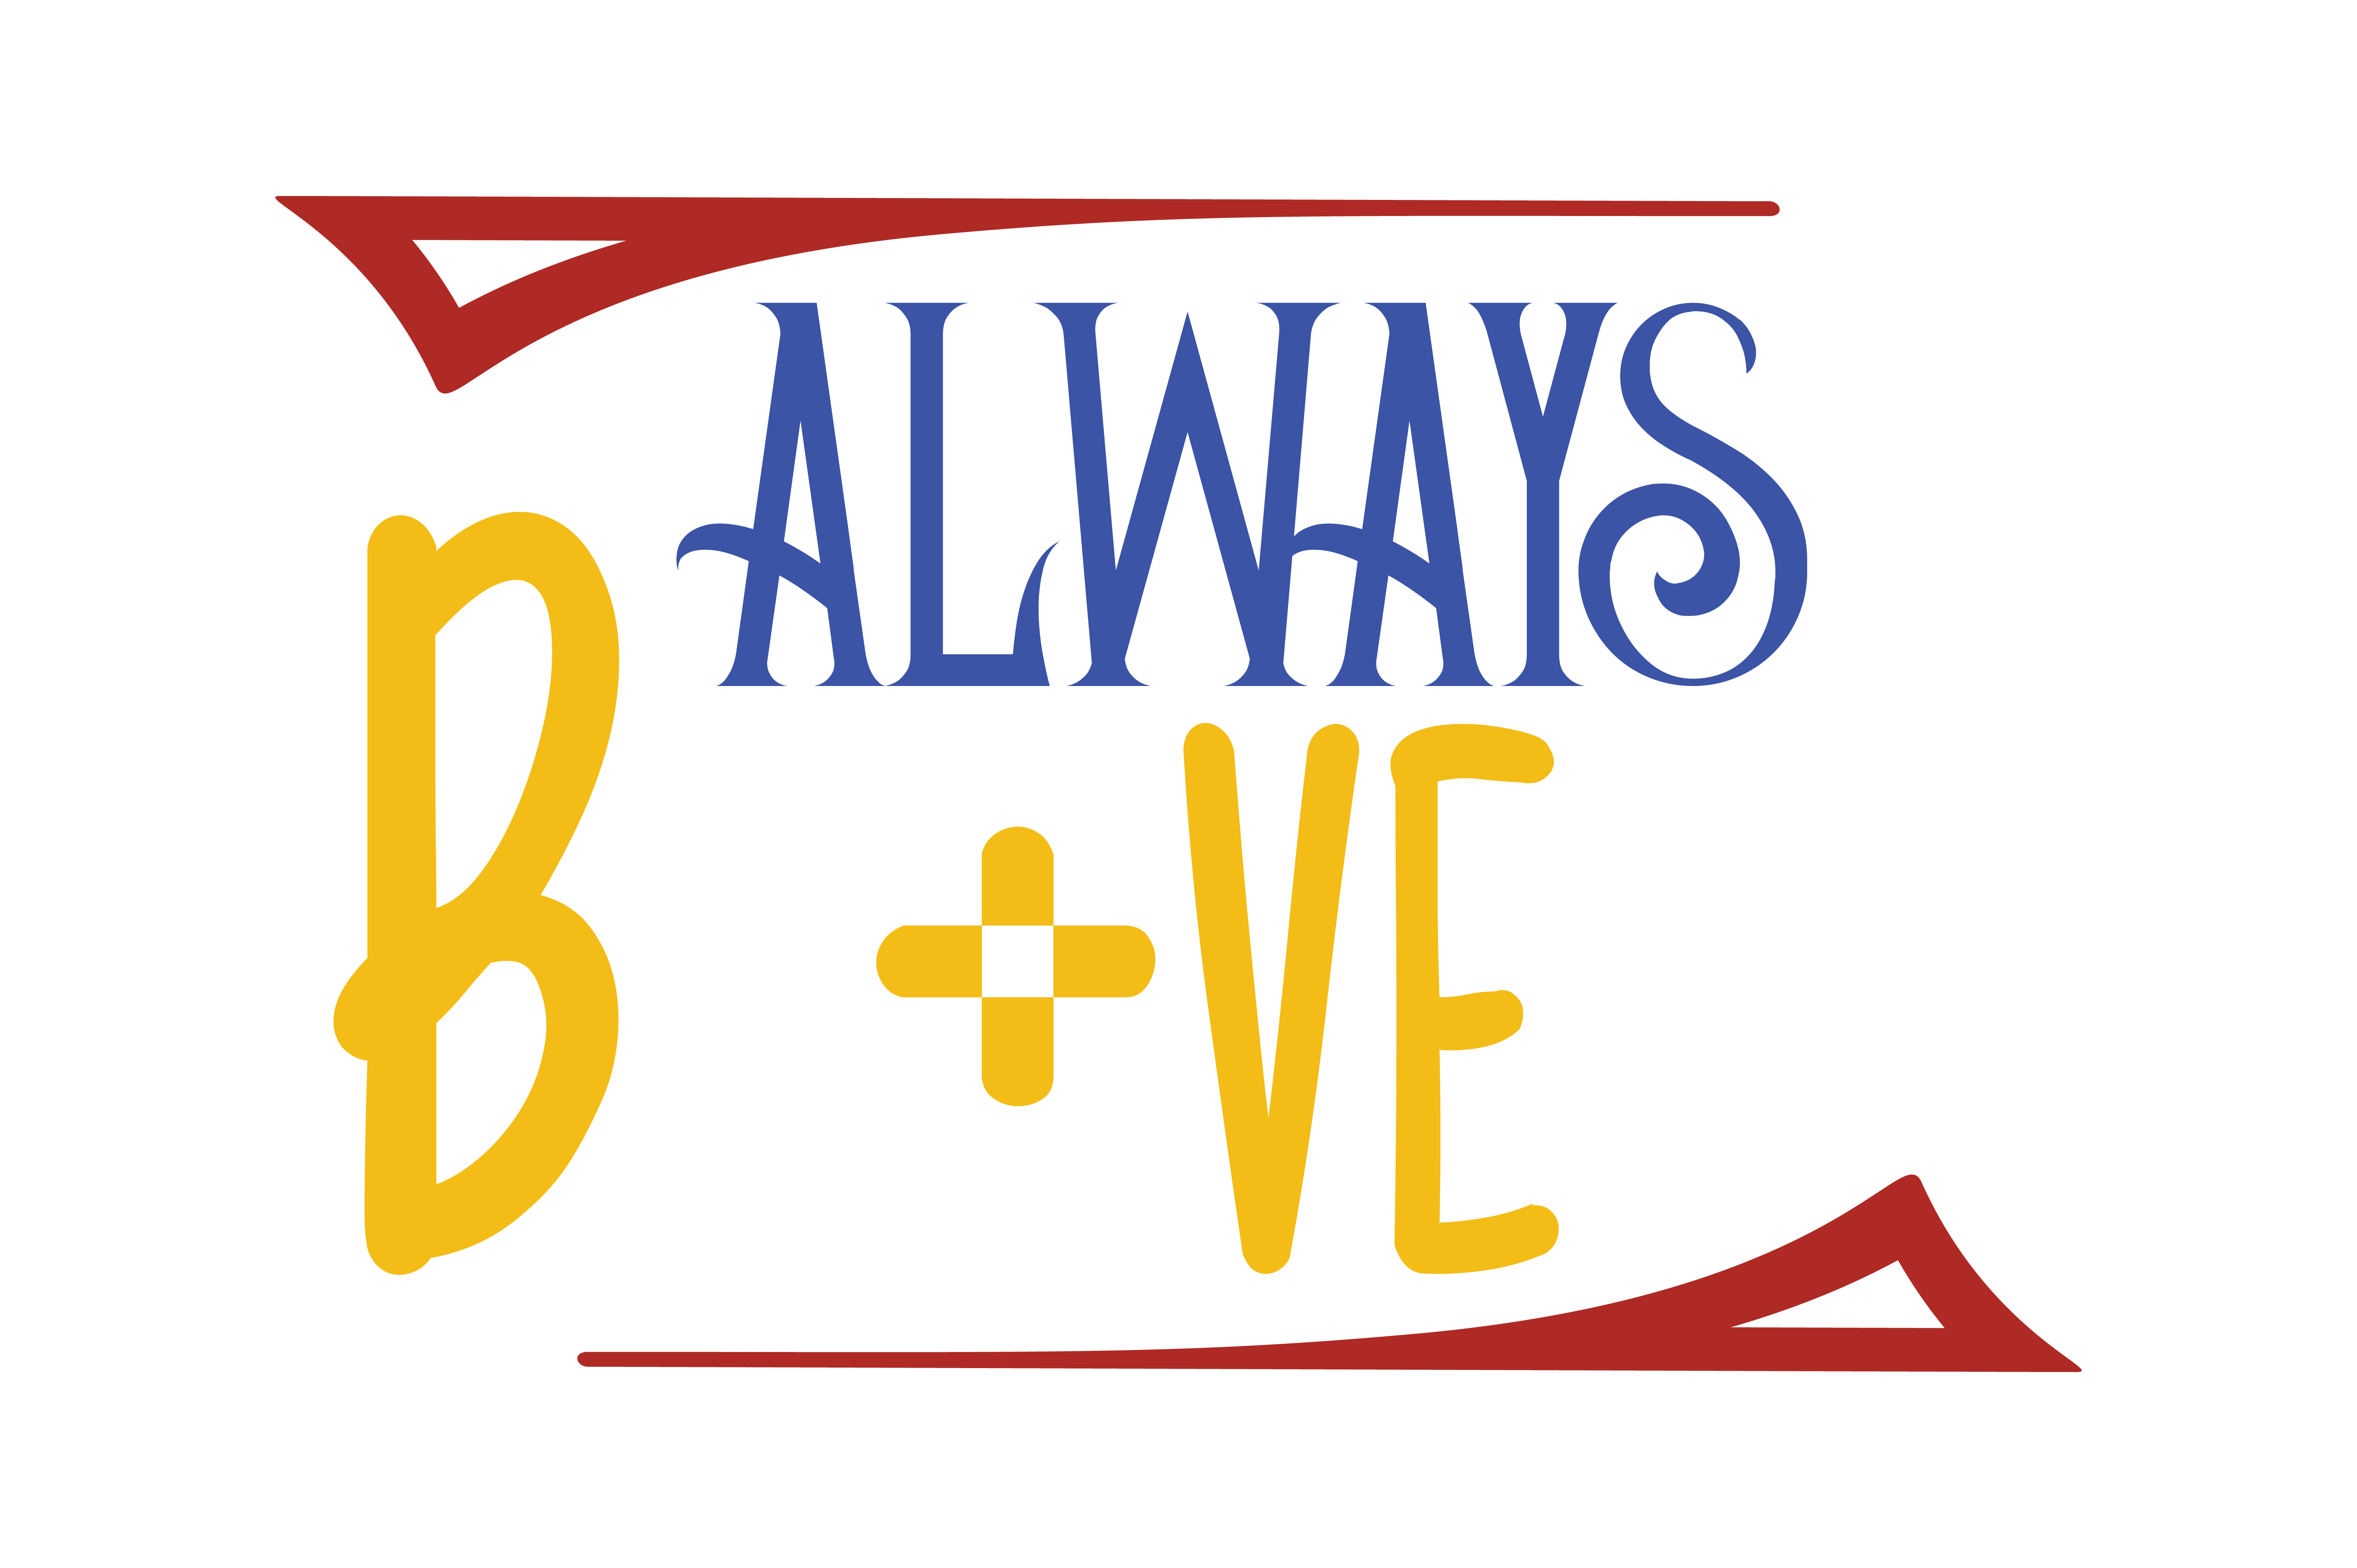 Download Free Always B Ve Svg Cut Quote Graphic By Thelucky Creative Fabrica for Cricut Explore, Silhouette and other cutting machines.